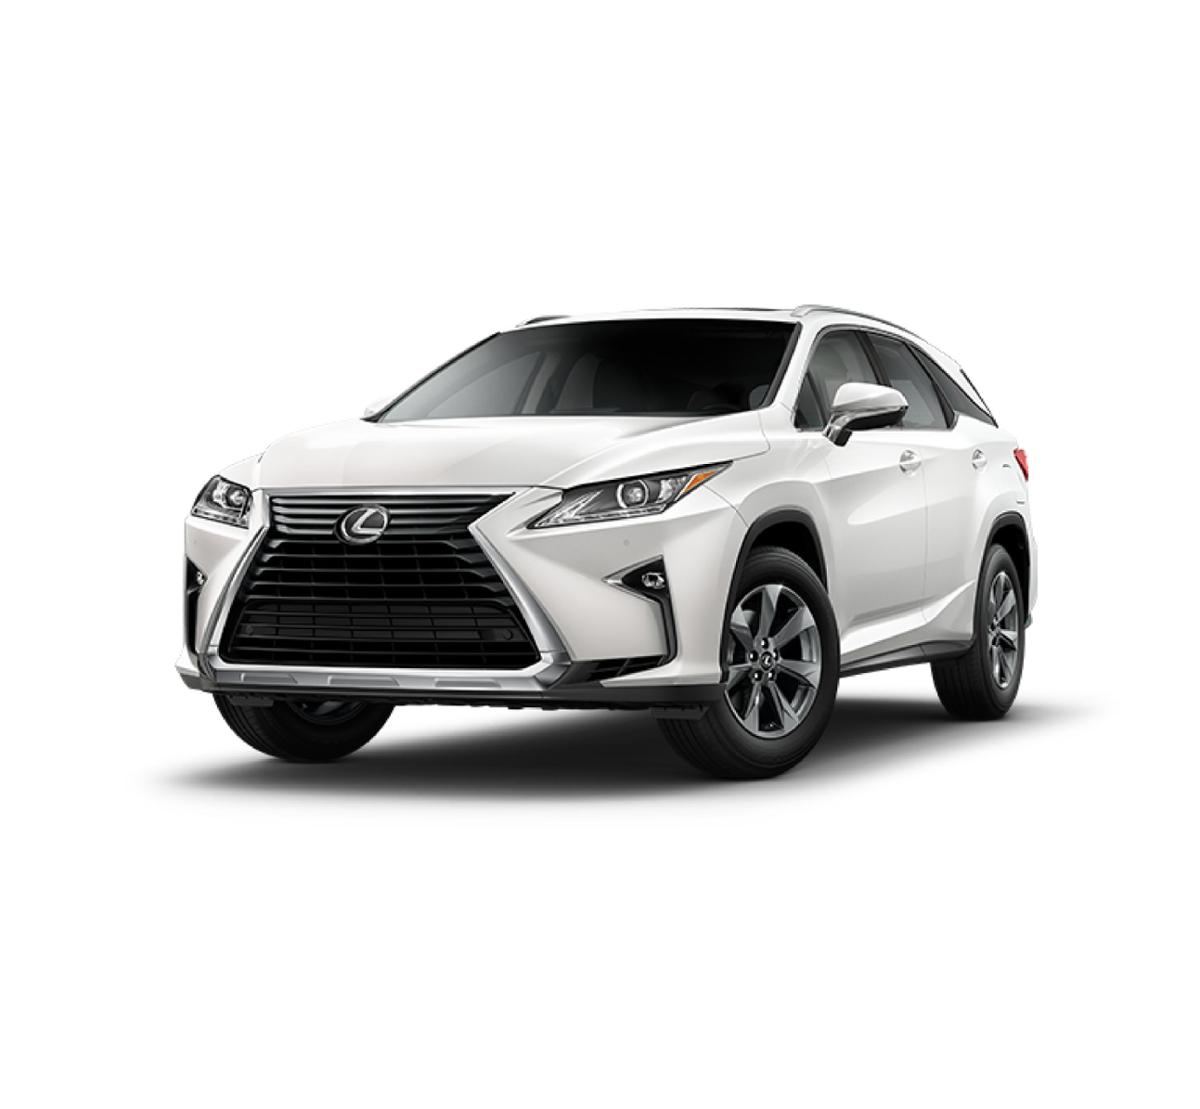 2019 Lexus RX 350L Vehicle Photo in Mission Viejo, CA 92692